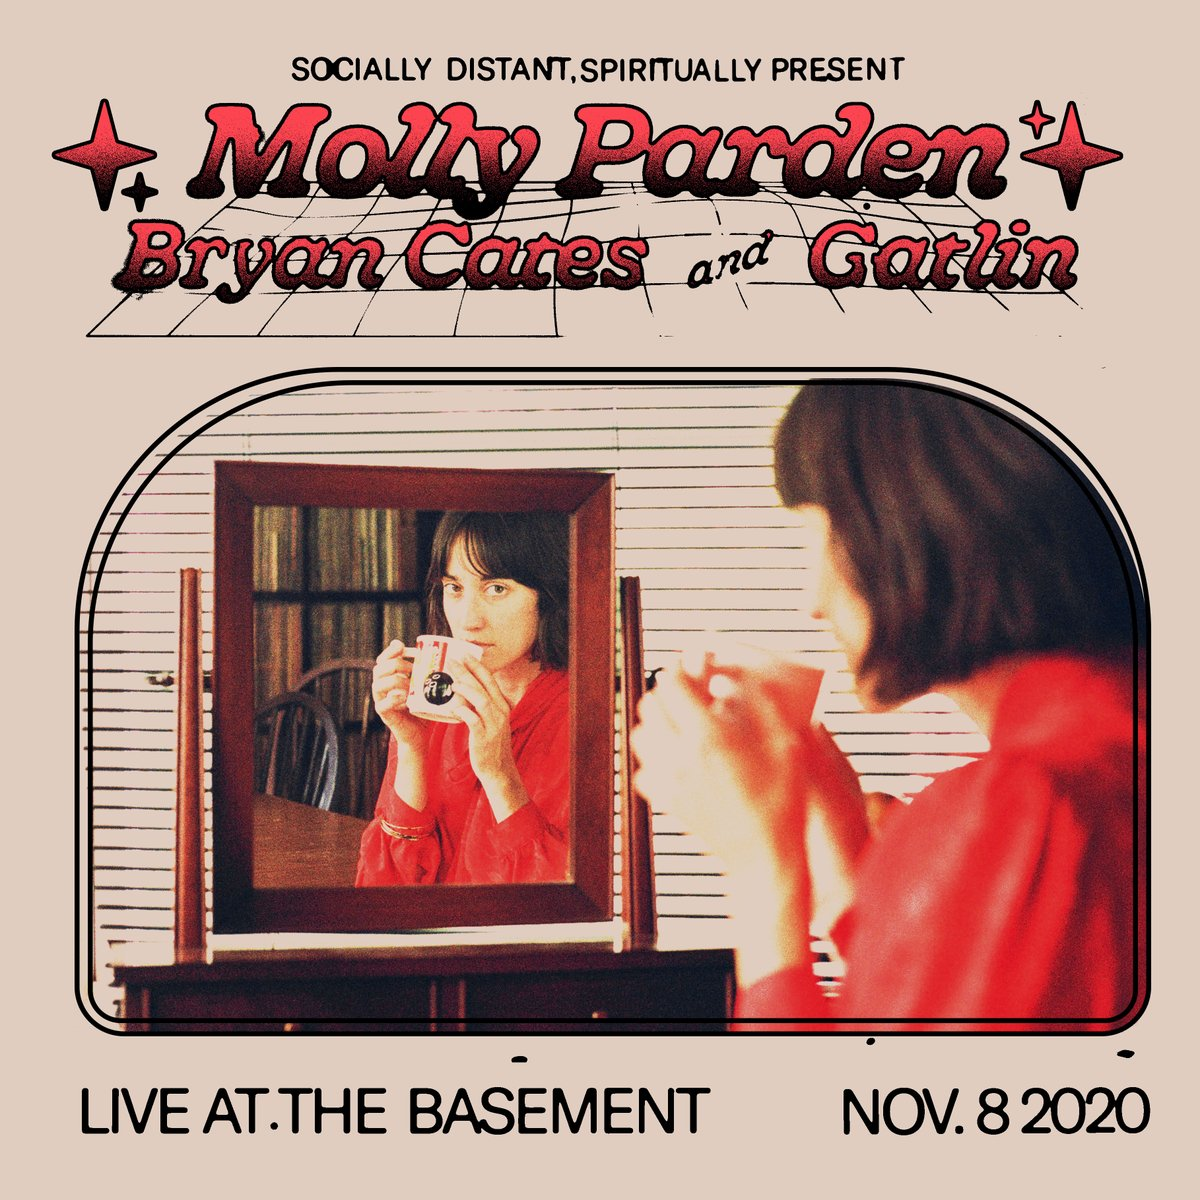 Dont miss @mollyparden w/ @bryancates22 & #gatlin on November 8th! Limited amount of tickets available so grab yours ASAP! bit.ly/3oFxsfK